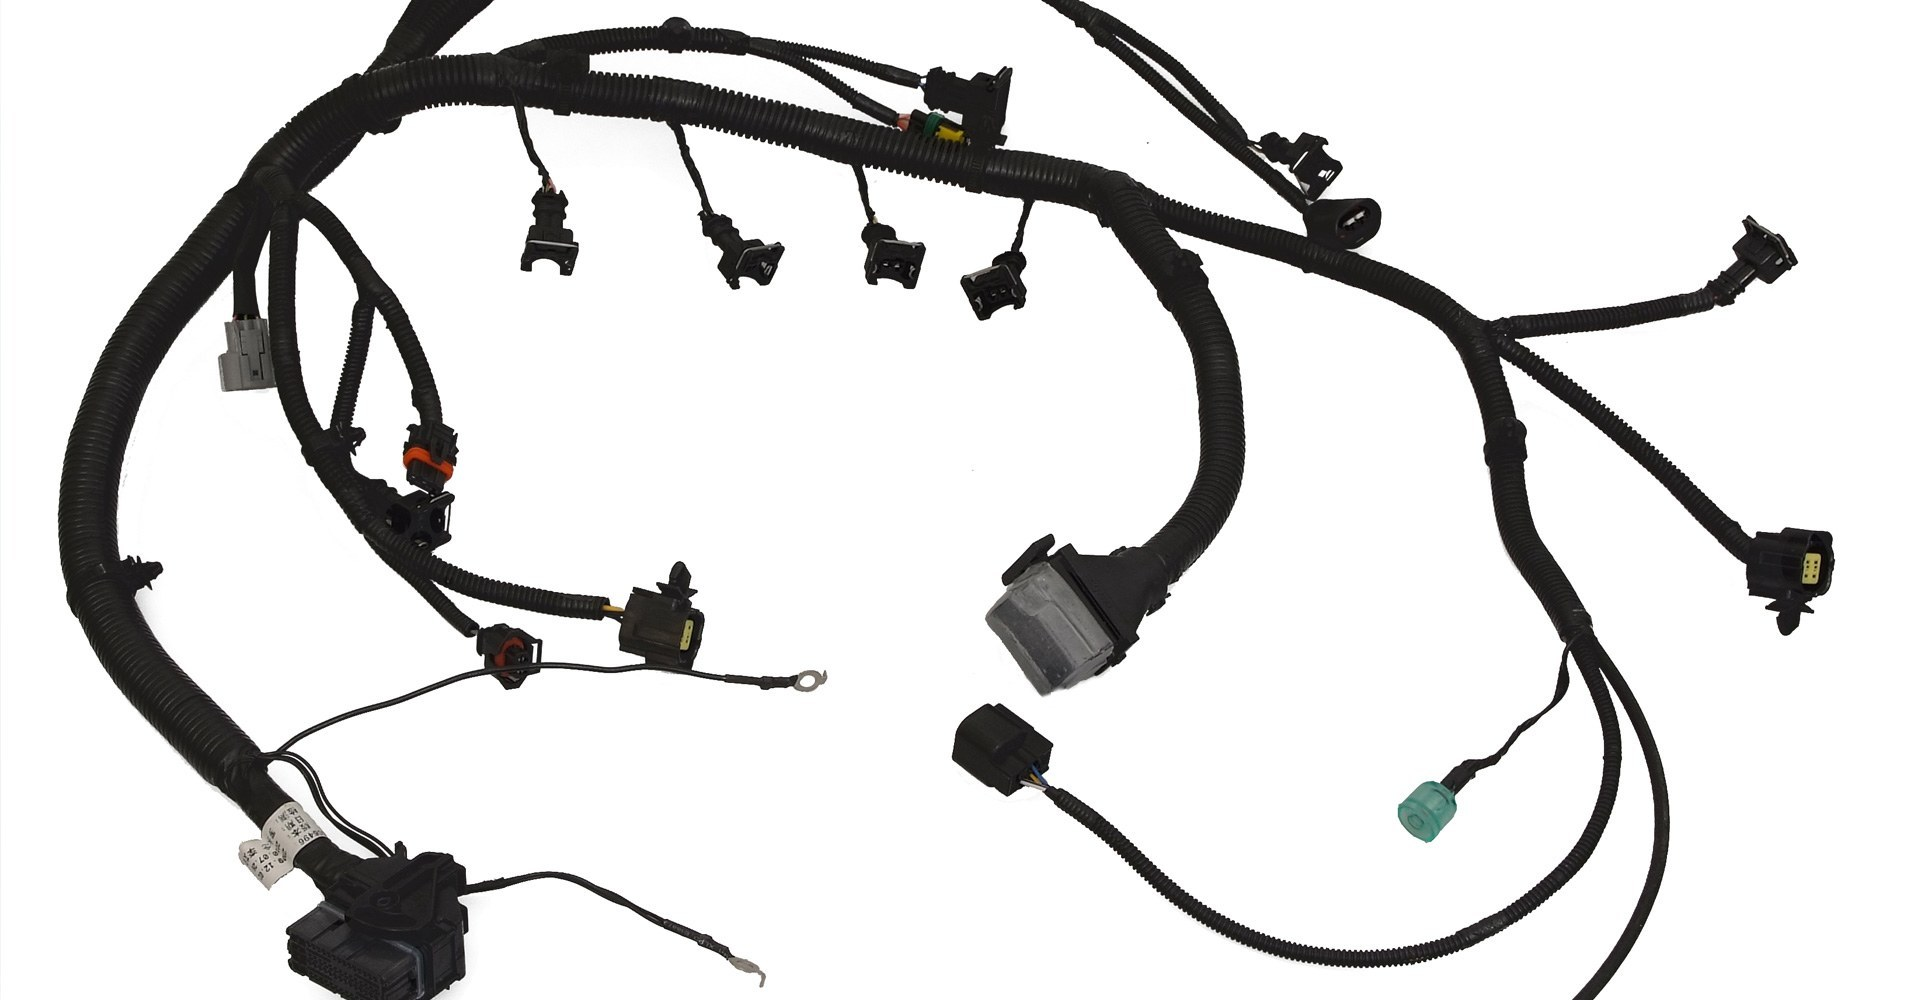 wireharness automotive wire harness products lorom Custom Automotive Wiring Harness Kits at bayanpartner.co